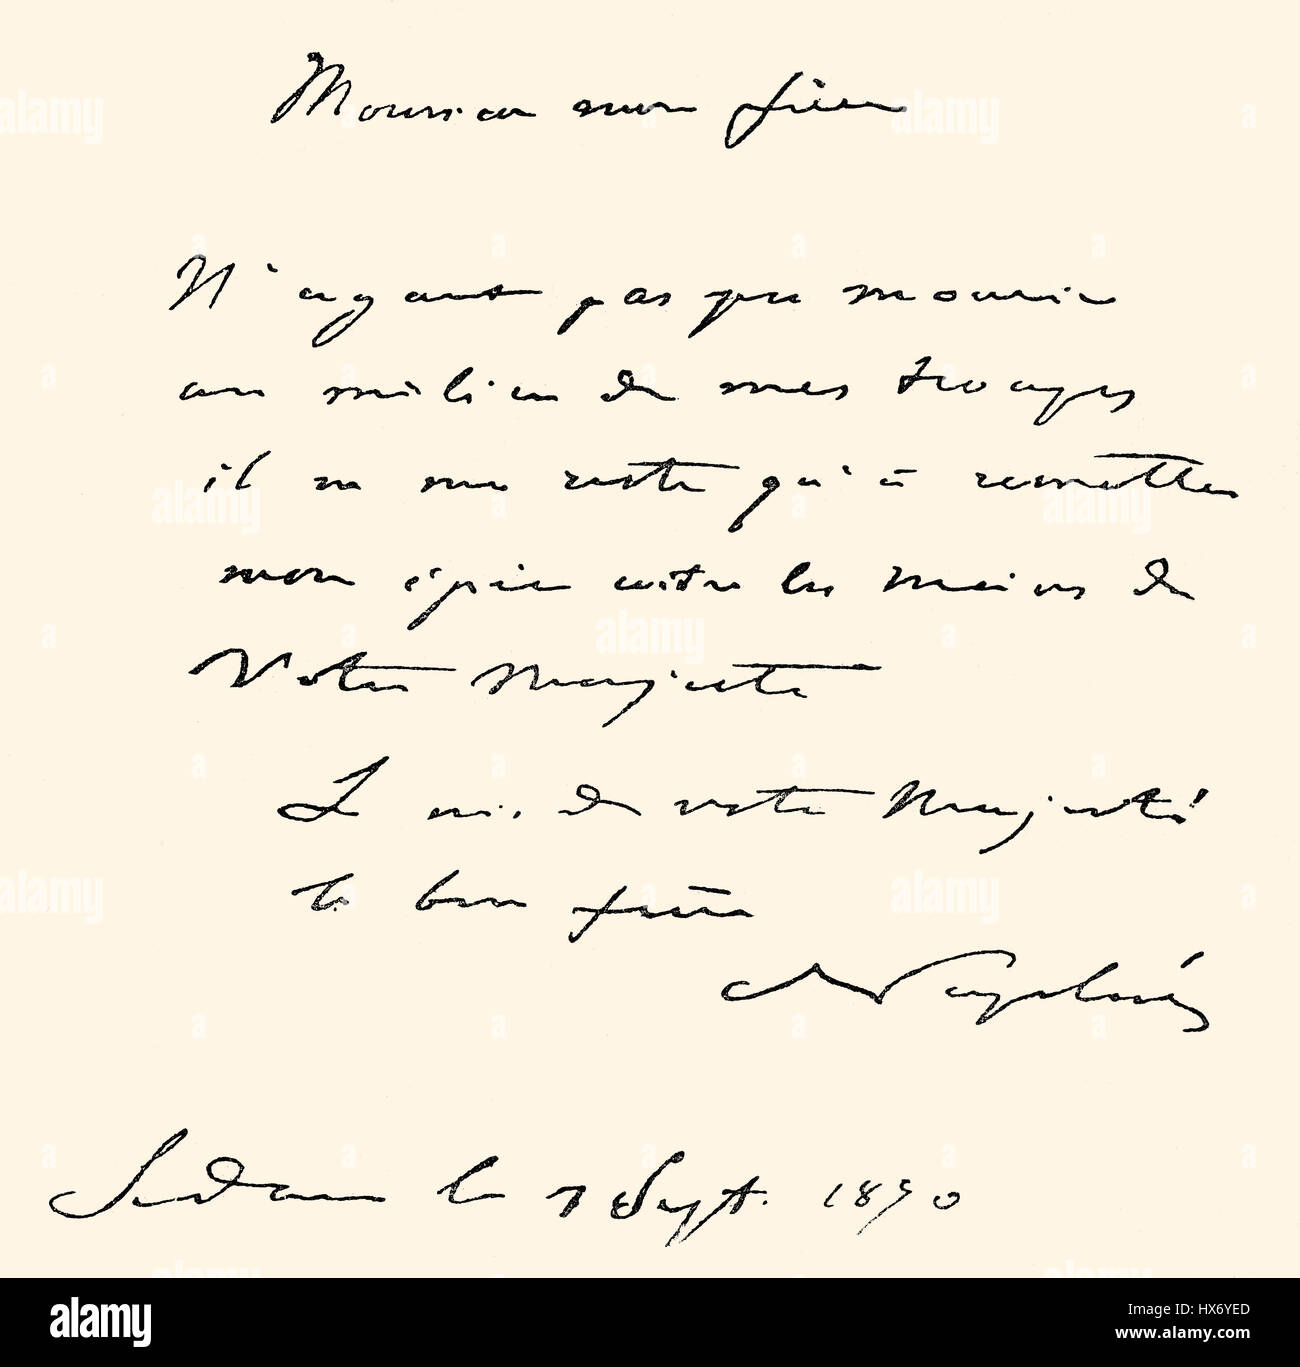 Handwritten letter by Napoleon III to William I after the Battle of Sedan, 1870 - Stock Image